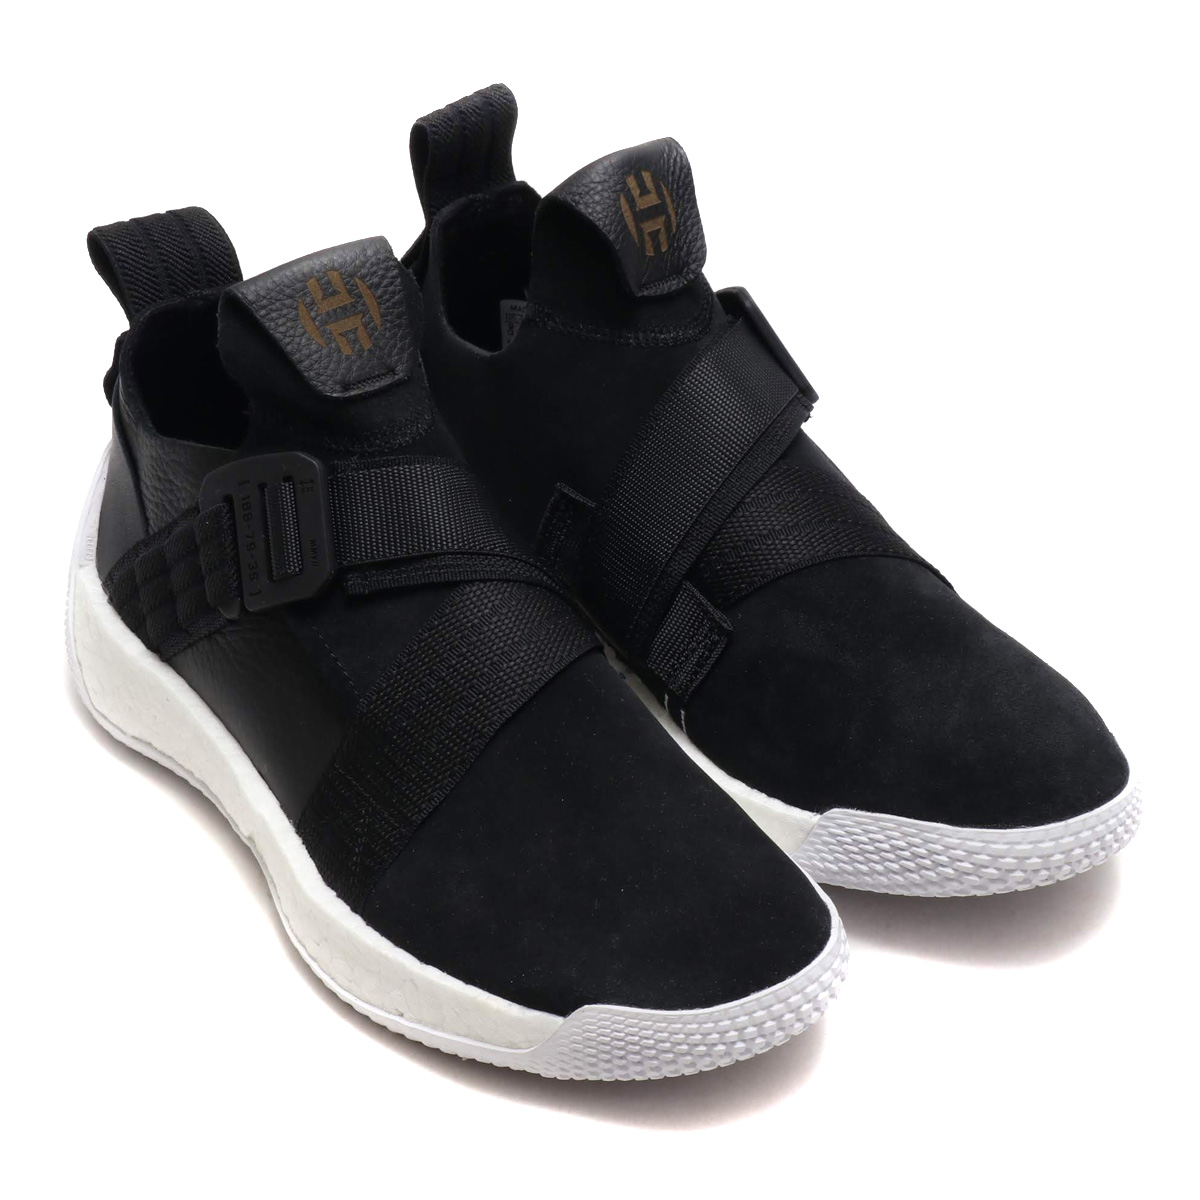 74e0f6814ad8 adidas Harden LS 2 BUCKLE (Adidas Arthur Harden LS2 buckle) Core Black Running  White Gold Met 18FW-I